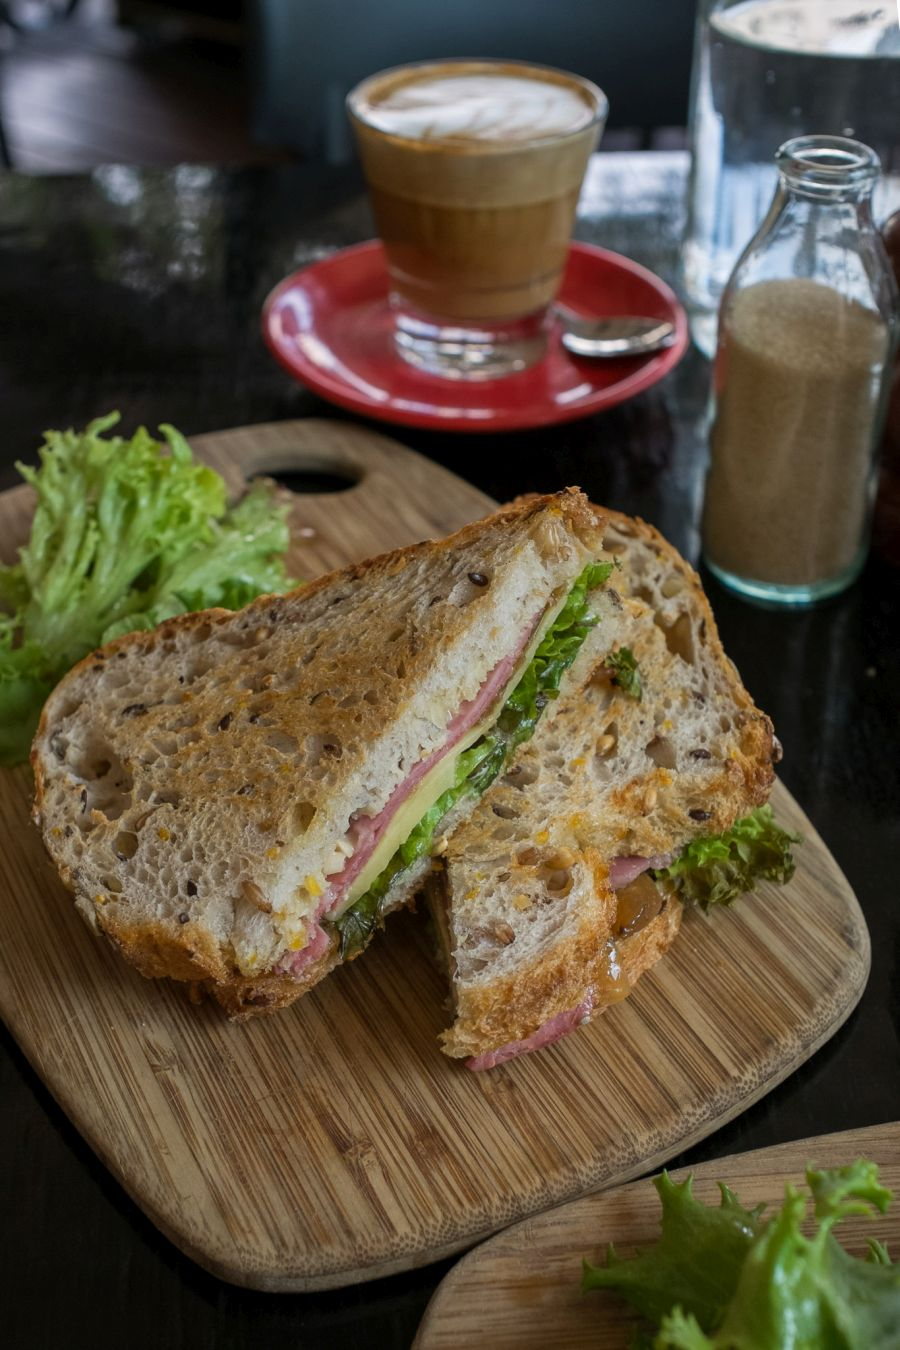 Corned beef, cheese, lettuce, caramelised onion sandwich